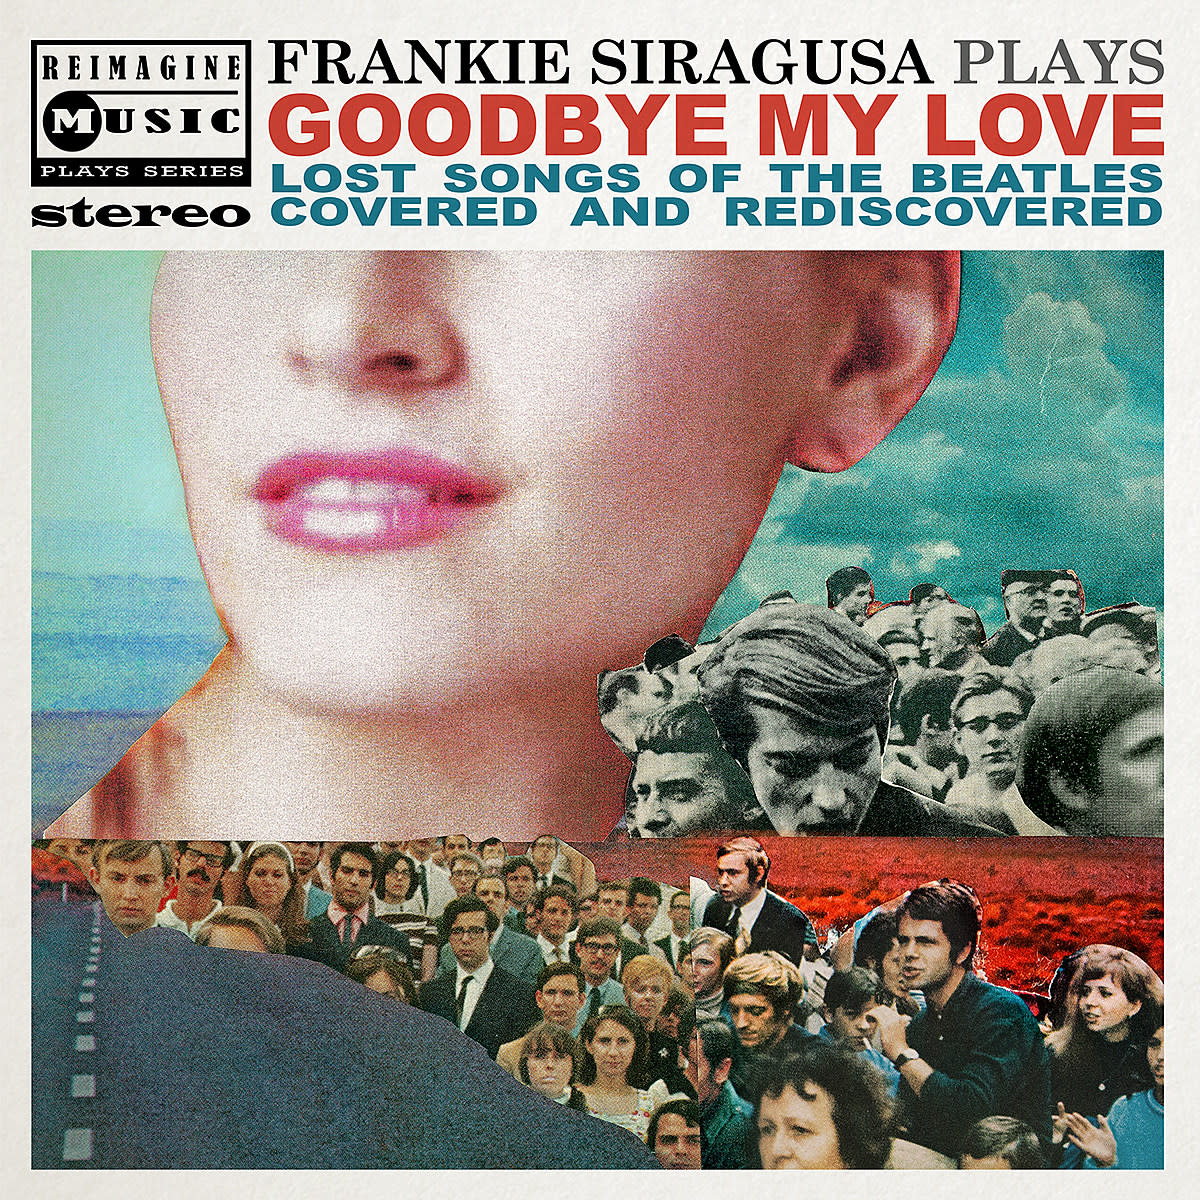 Frankie-Siragusa-Plays-Goodbye-My-Love-Lost-Songs-of-The-Beatles-Covered-and-Rediscovered